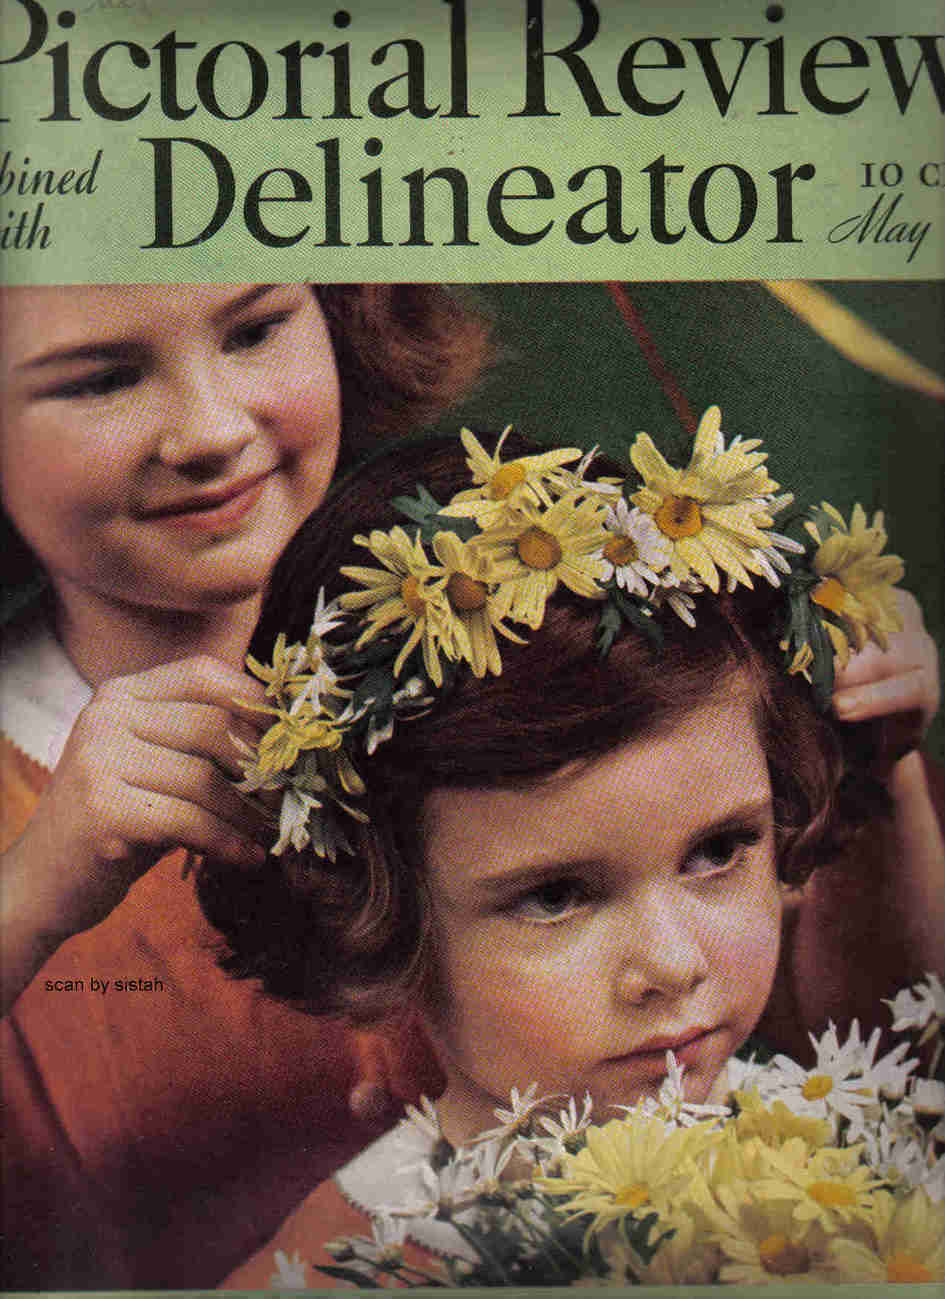 Delineator Pictorial Review Magazine May 1937 cover vintage art  Anton Bruehl